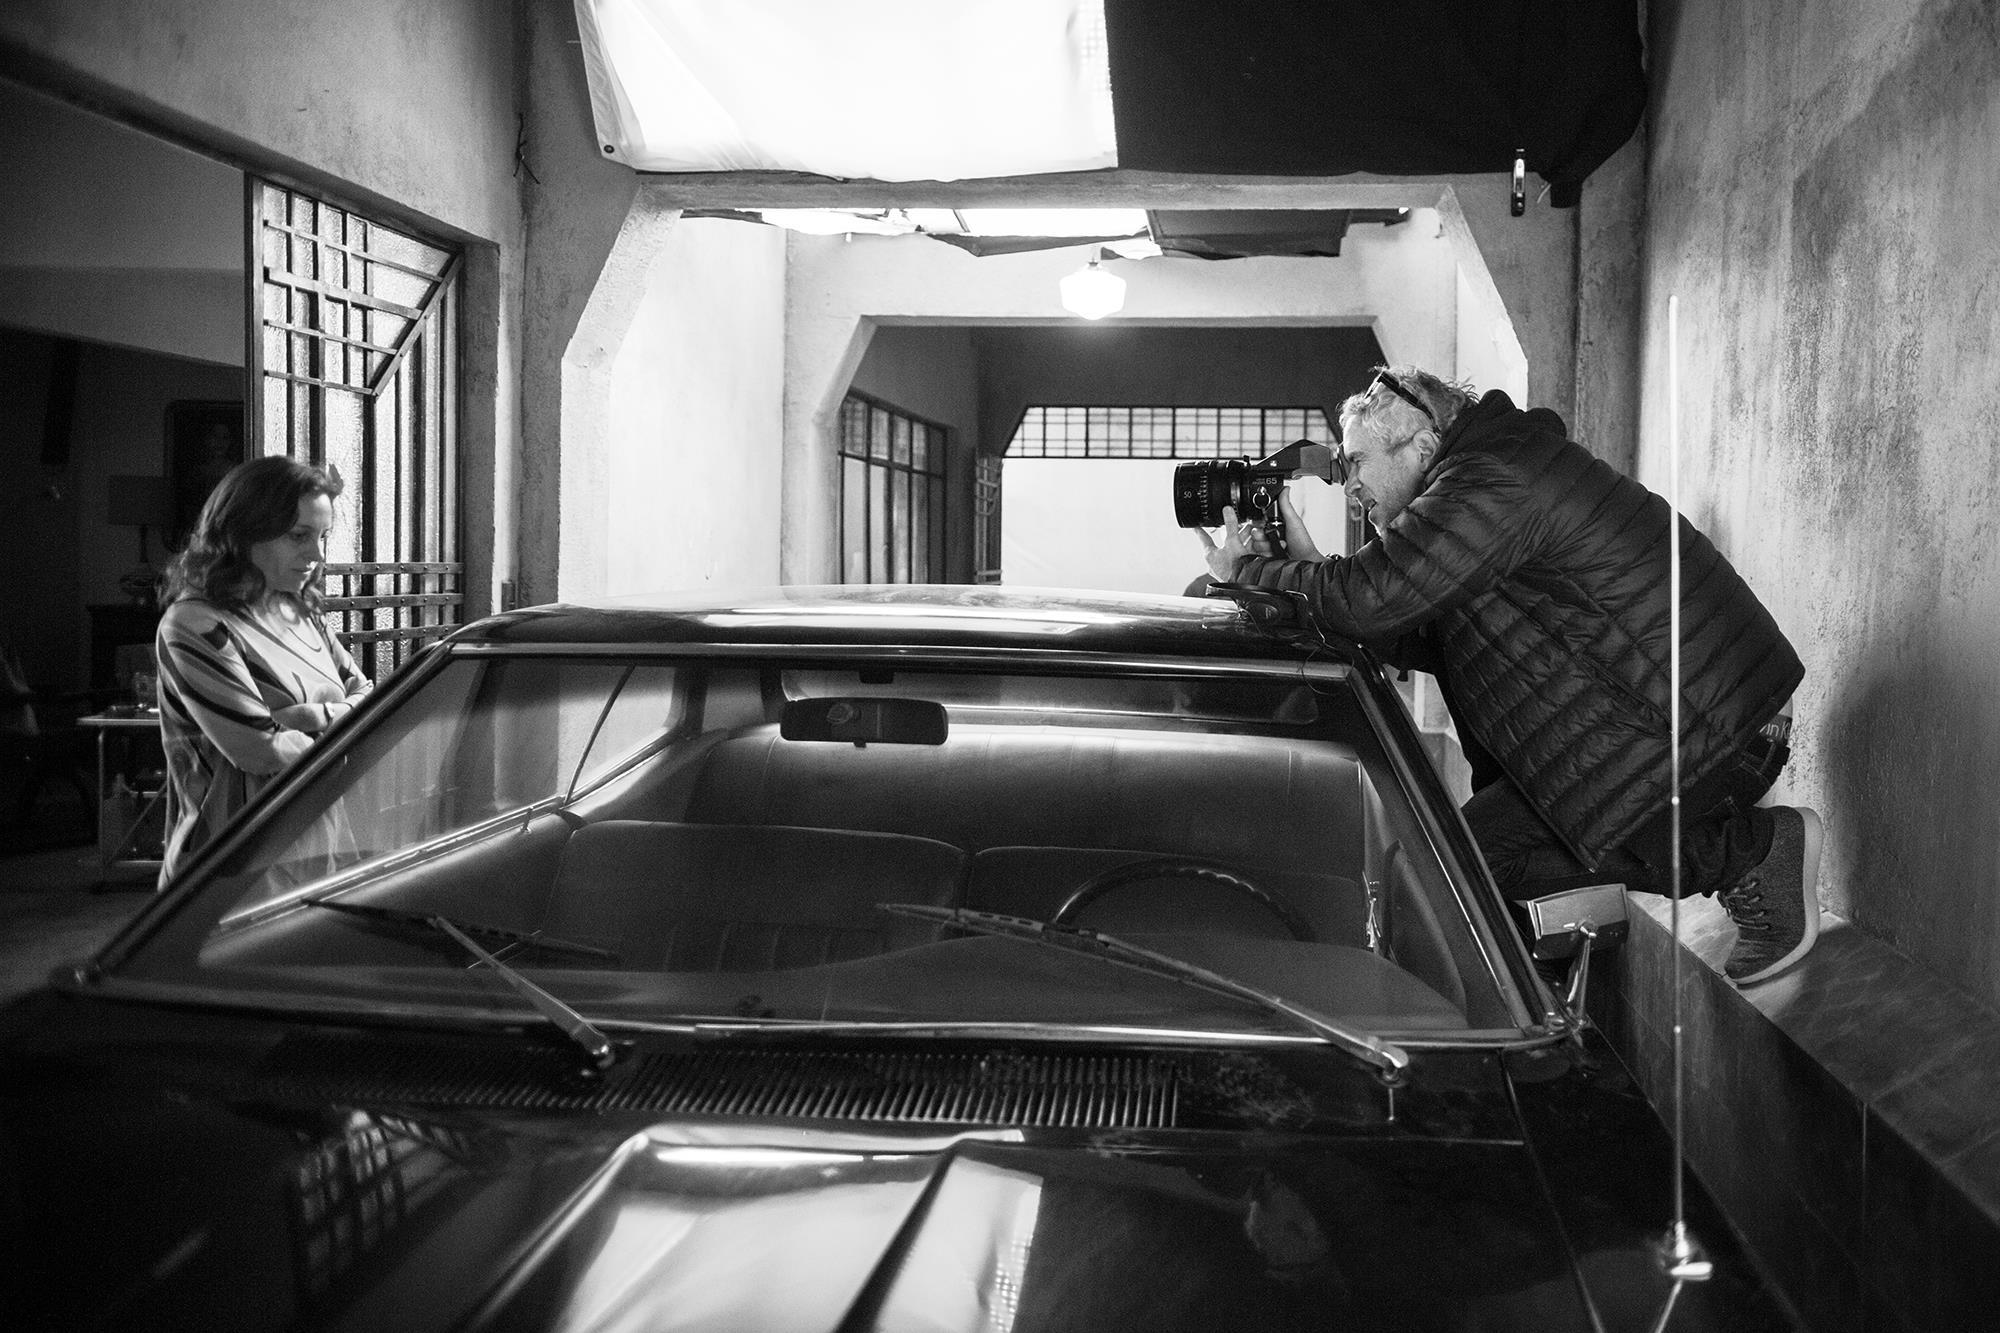 Why Alfonso Cuaron teamed up with Netflix on 'ROMA' | Features | Screen